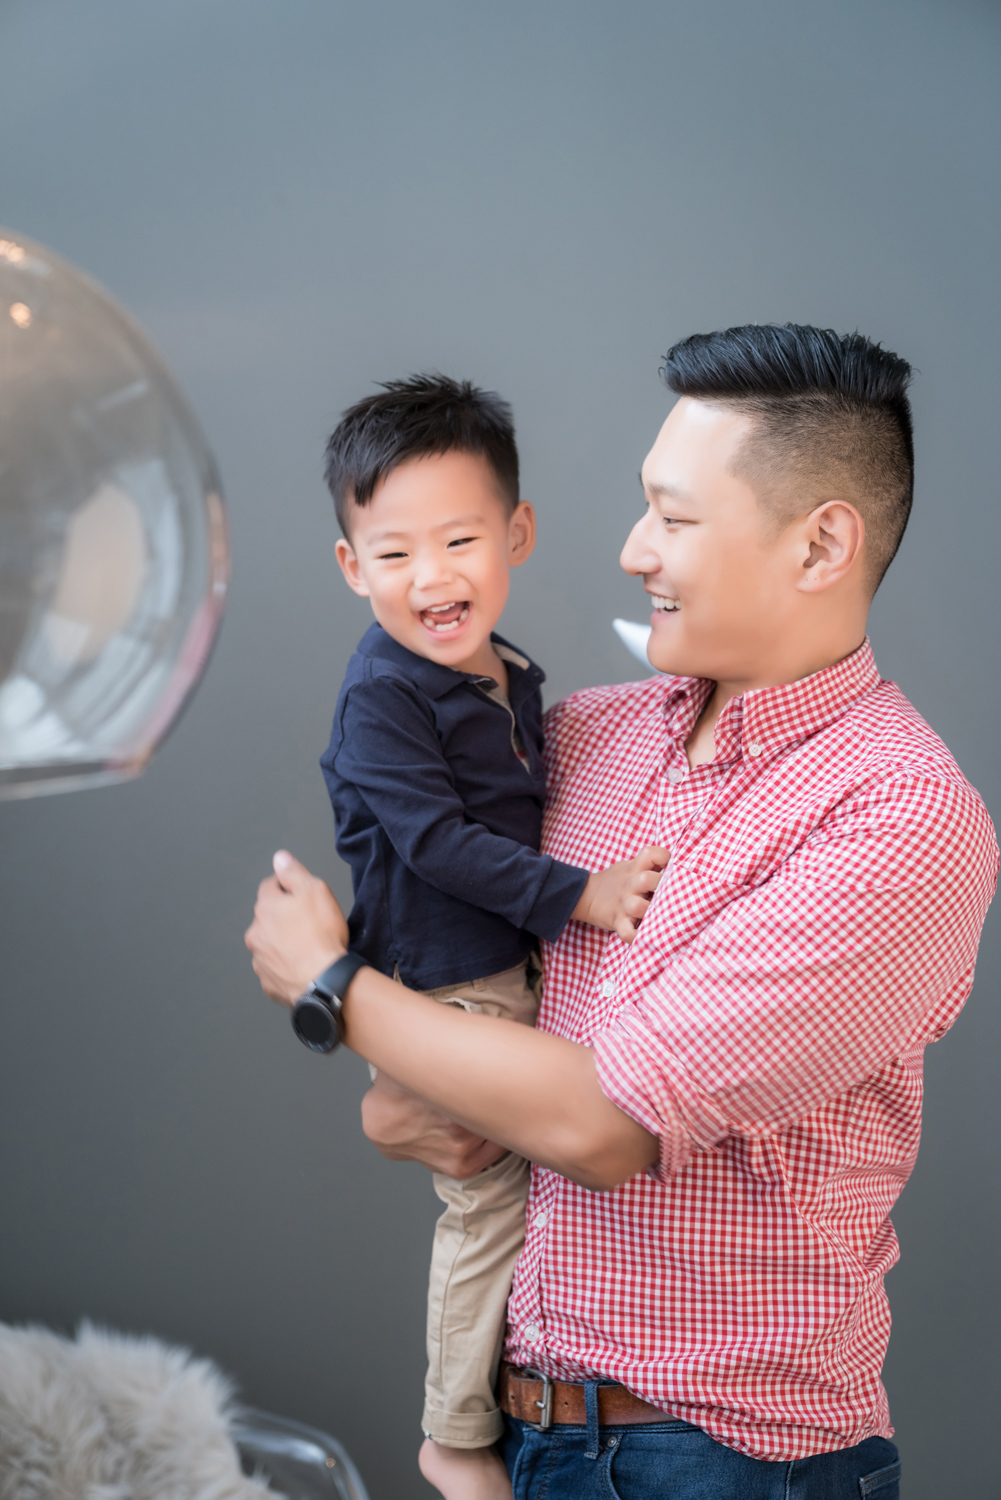 Father holds son and smiles.